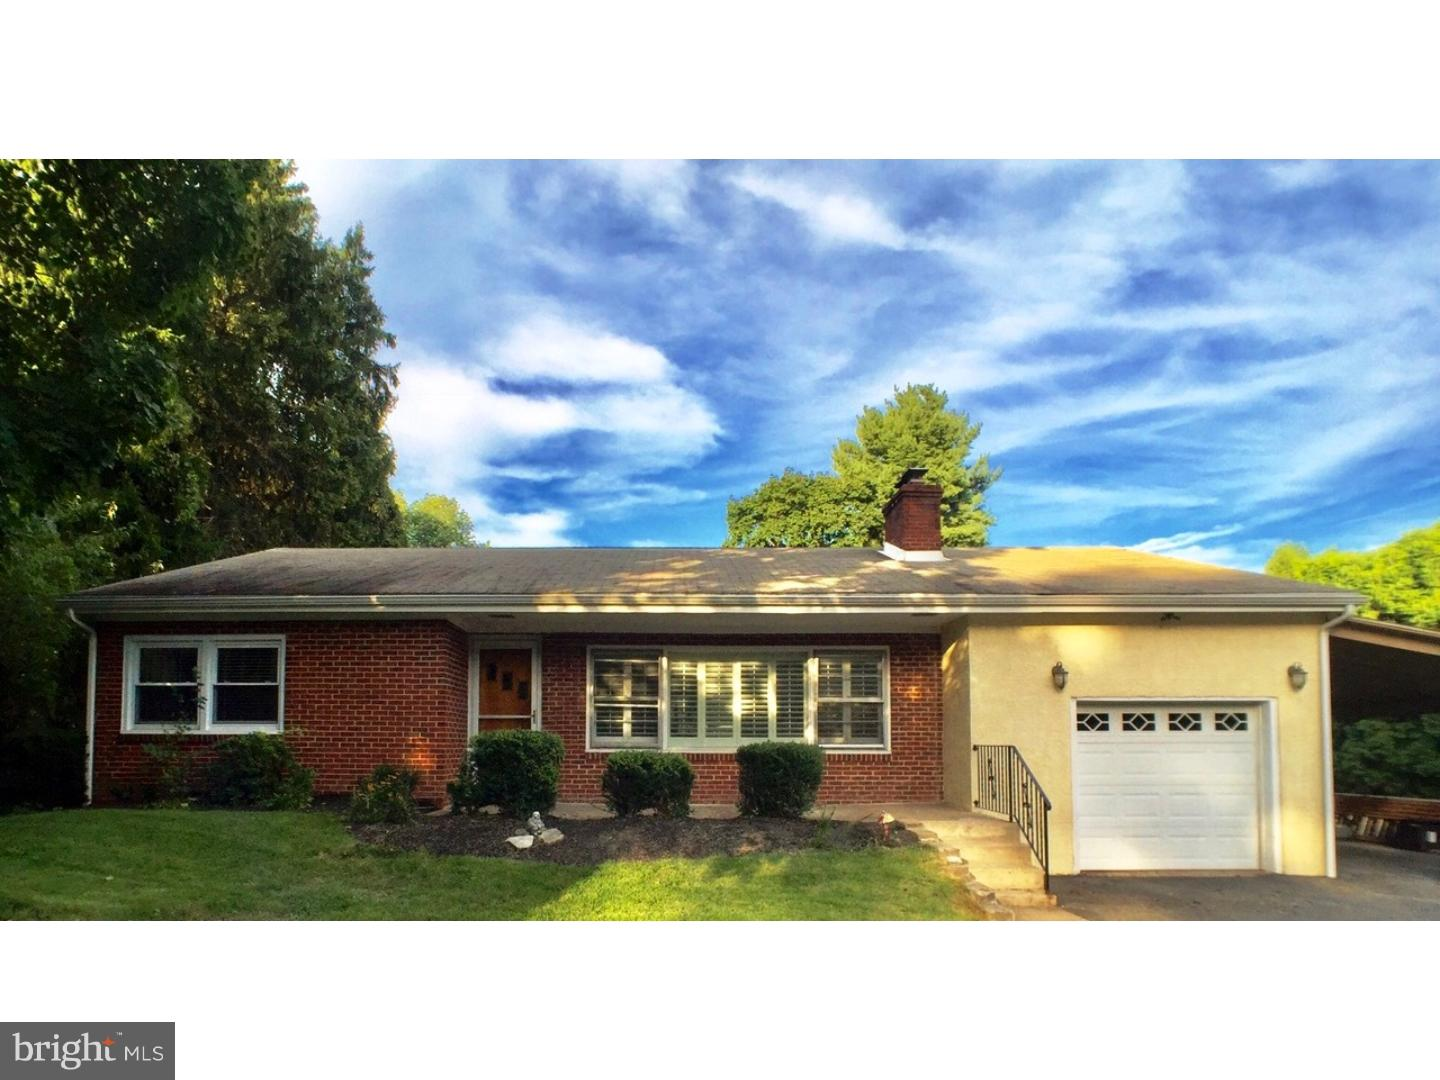 367 S New Middletown Road Media, PA 19063